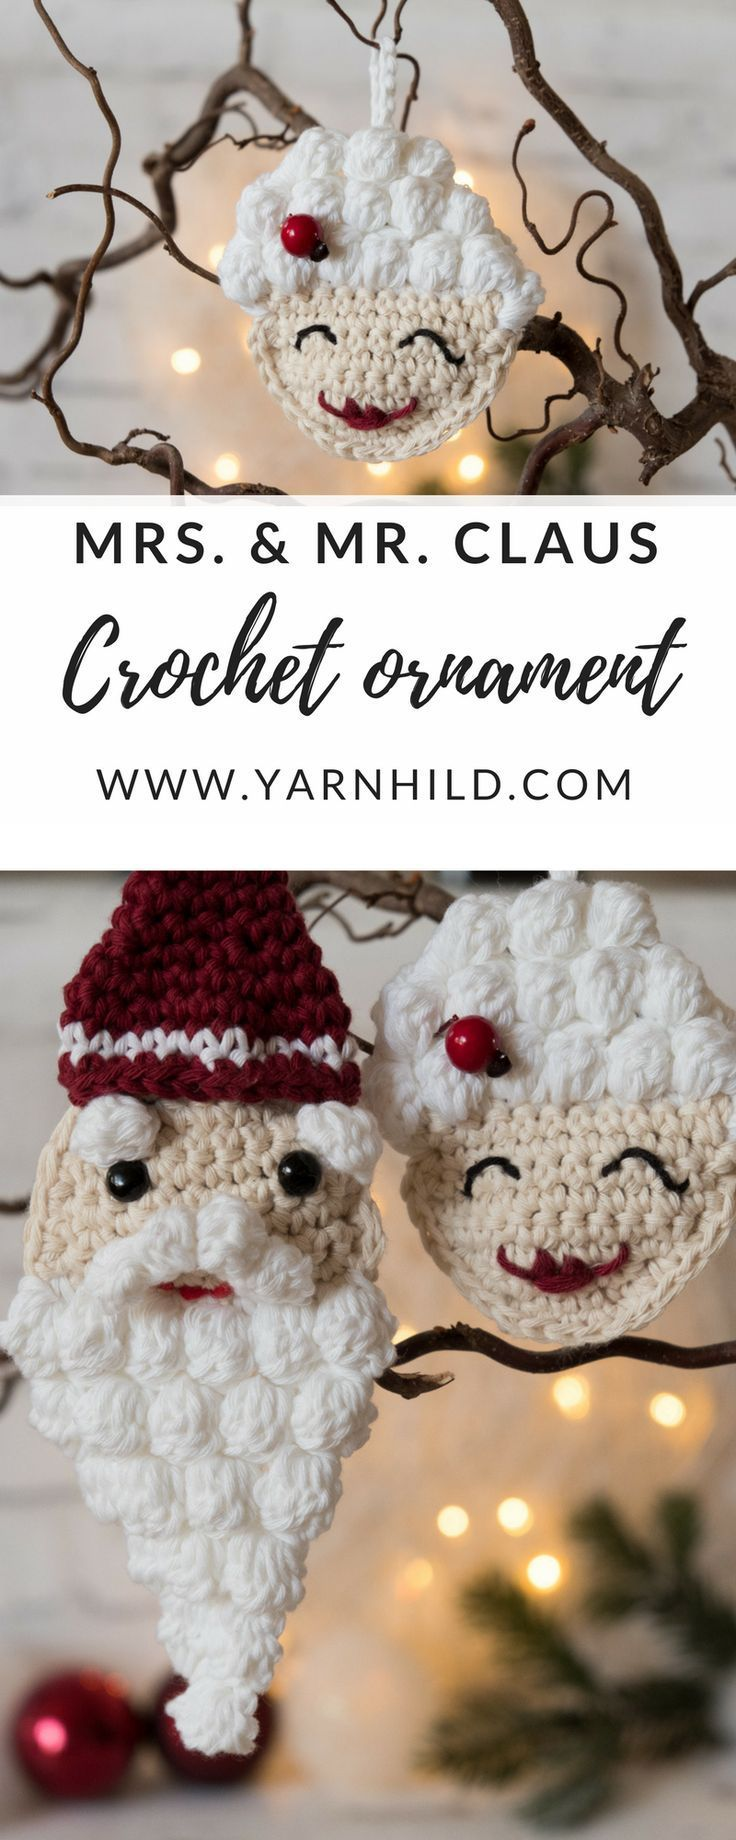 Free crochet pattern for these fun and cute crochet ornaments! Pattern in English and Norwegian